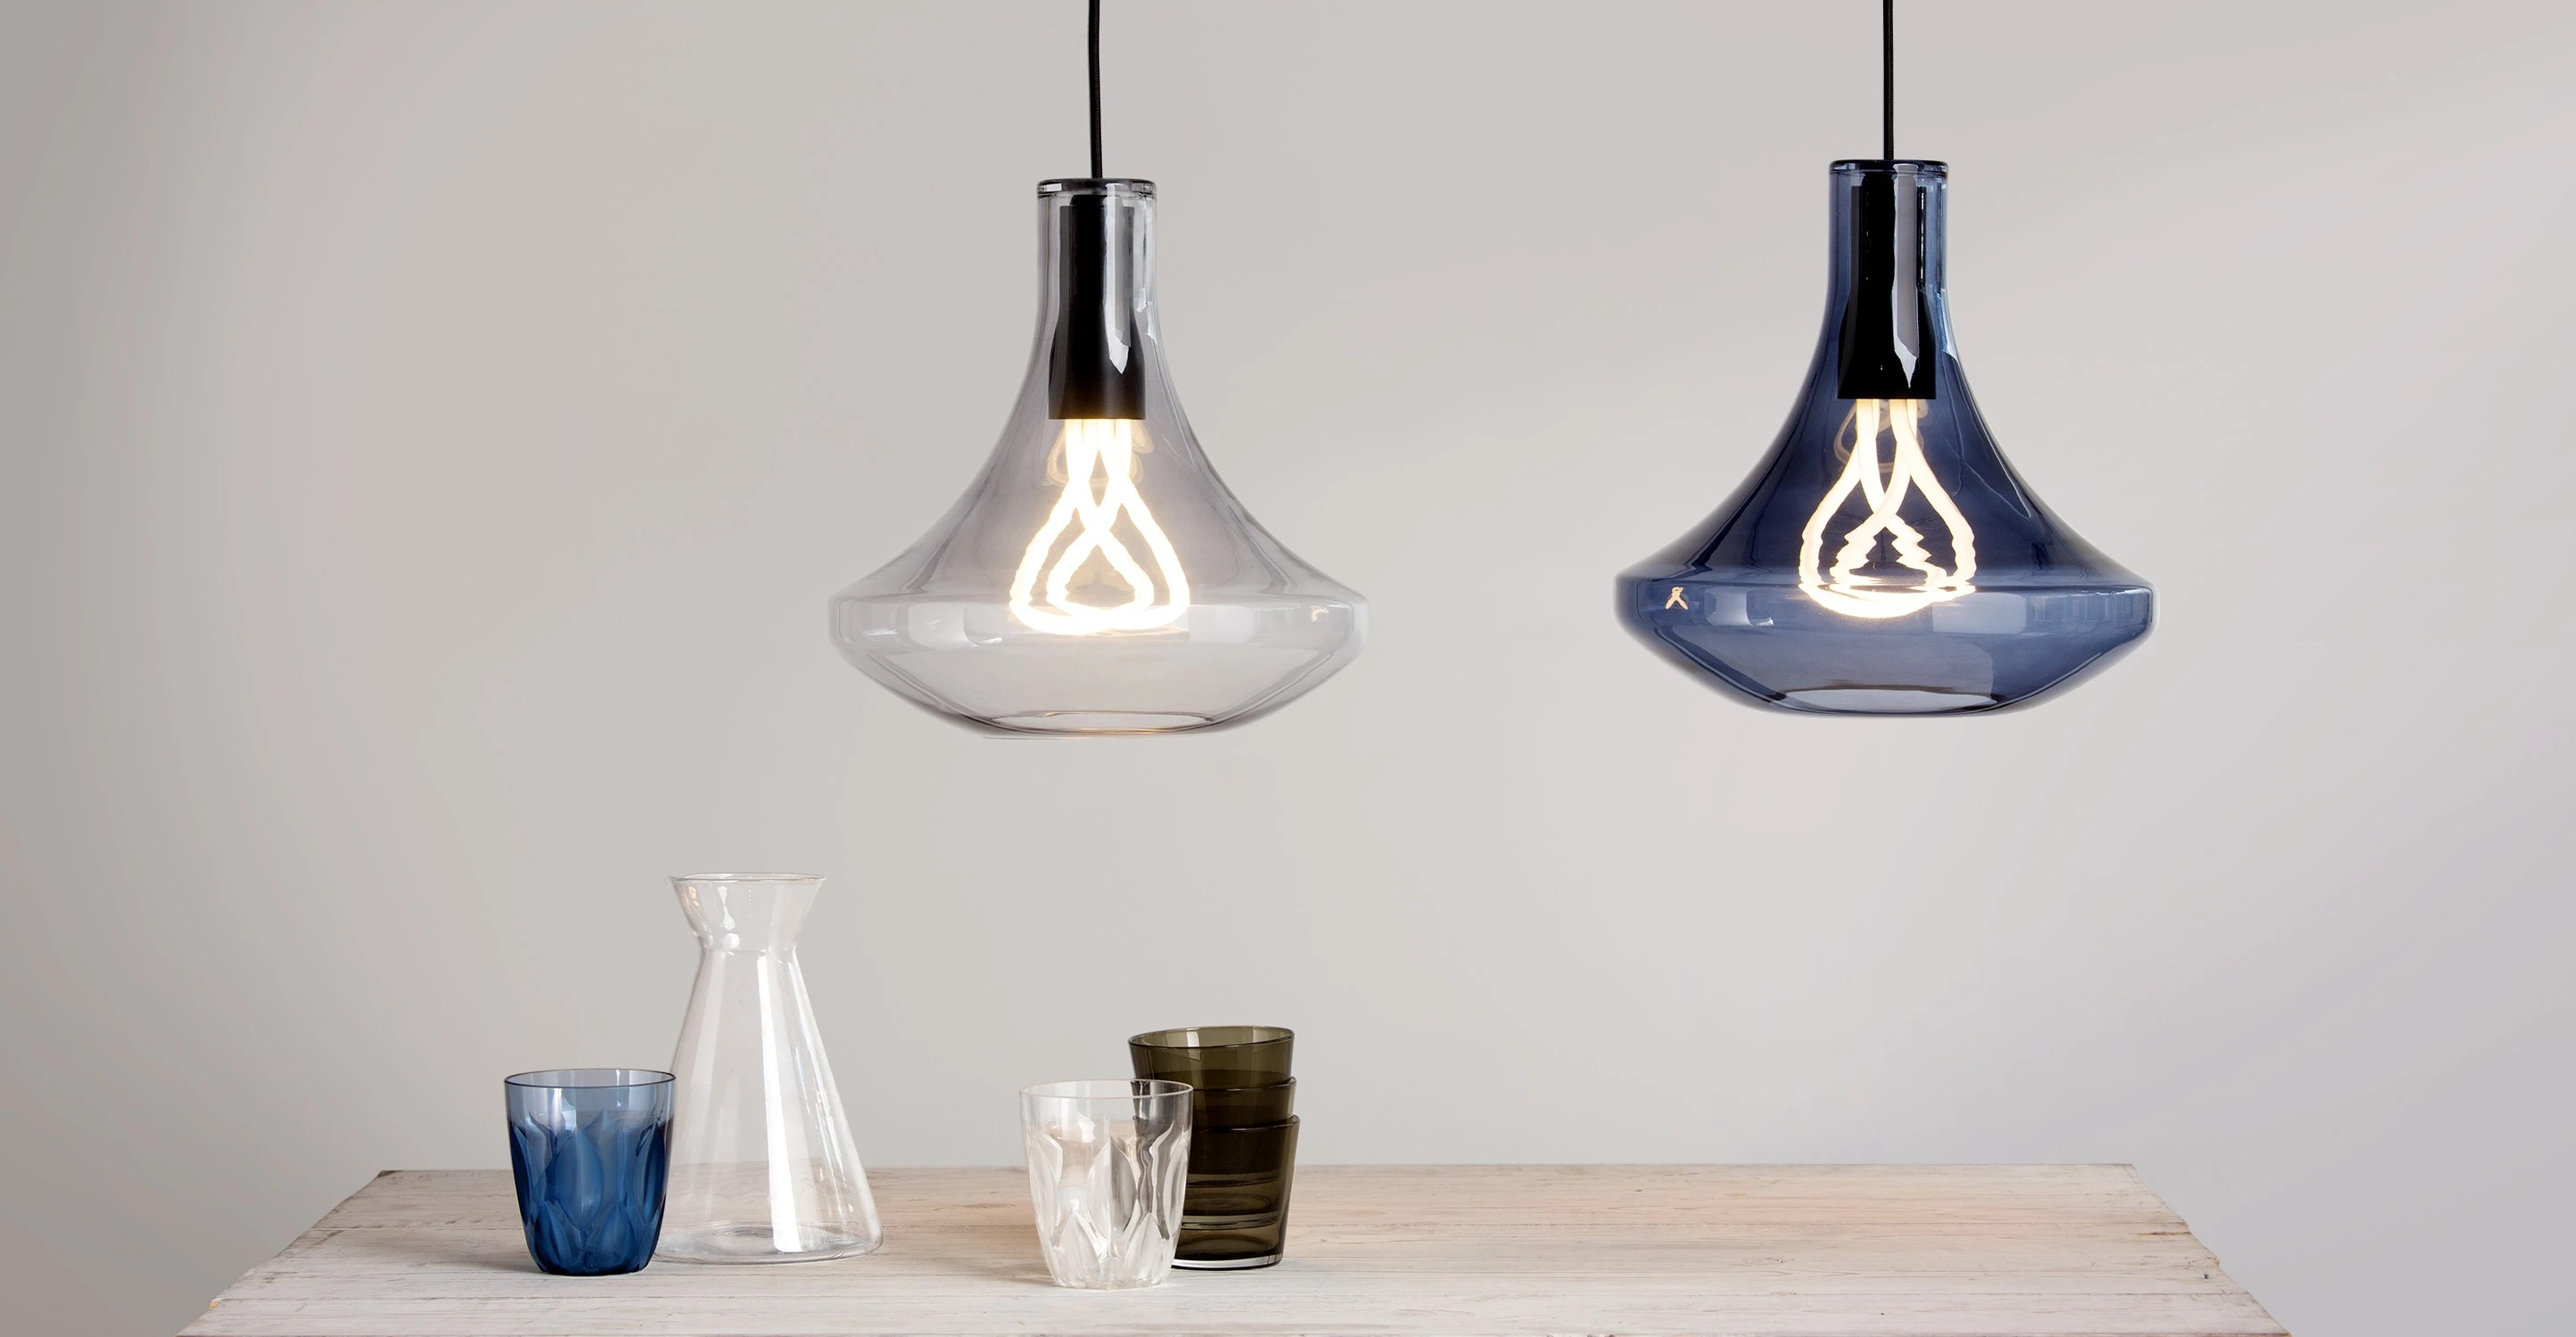 Pendant Lamps Plume Pendant Lamp And Plumen 001 Bulb Smoke Grey Made